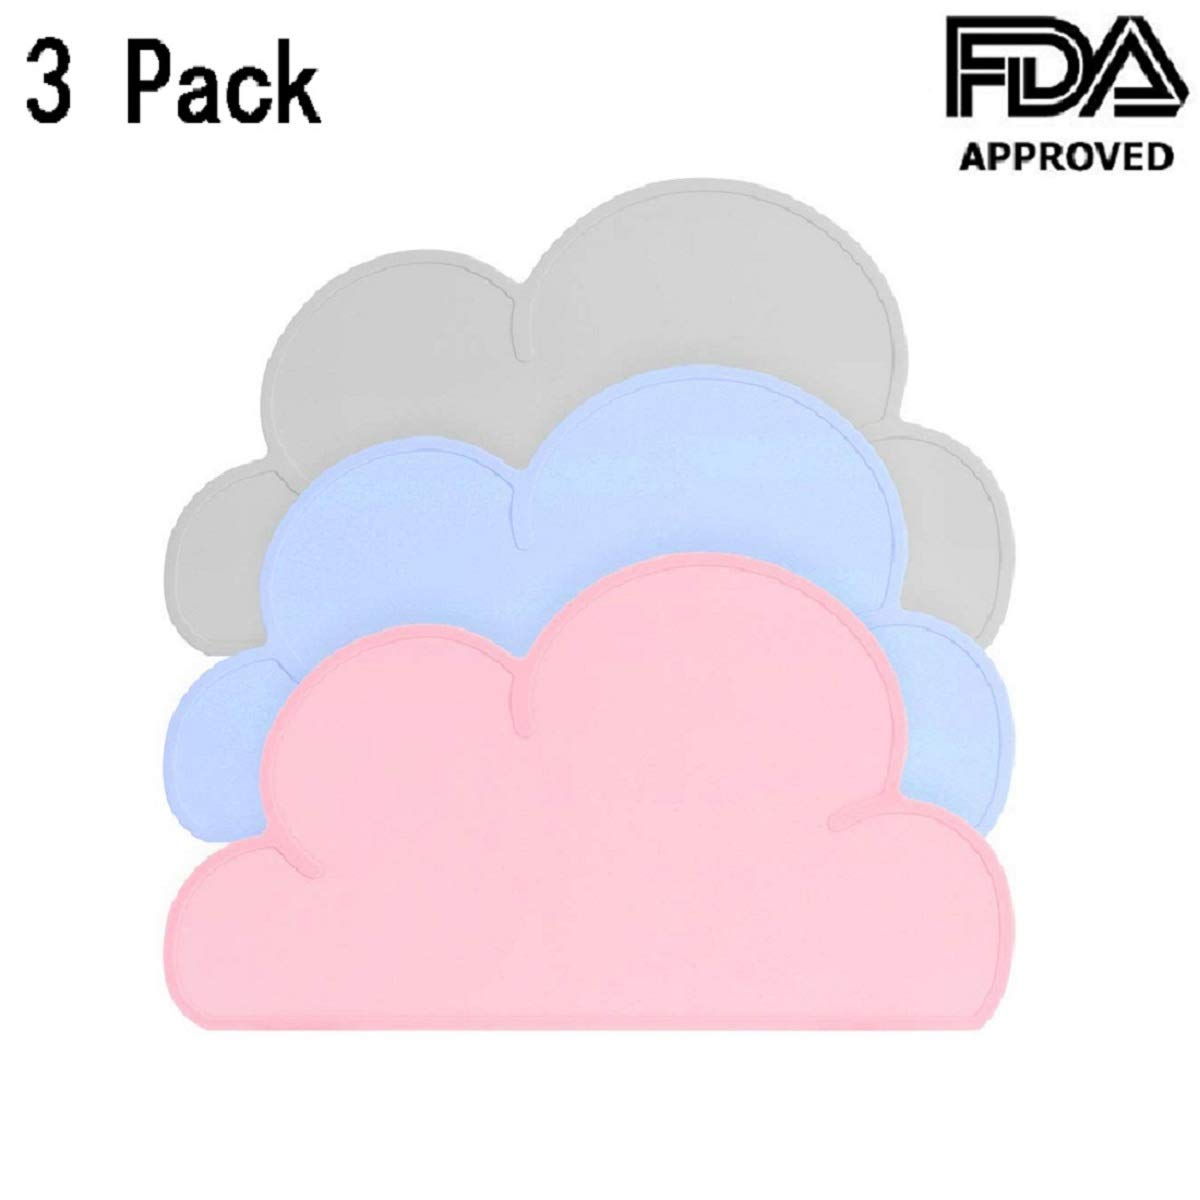 3PCS Kids Silicone Cloud Placemat,Portable Roll up Placemat for Kids Baby Toddlers,Portable Food Mat- Space Saving Rolls Up&Easy to Clean